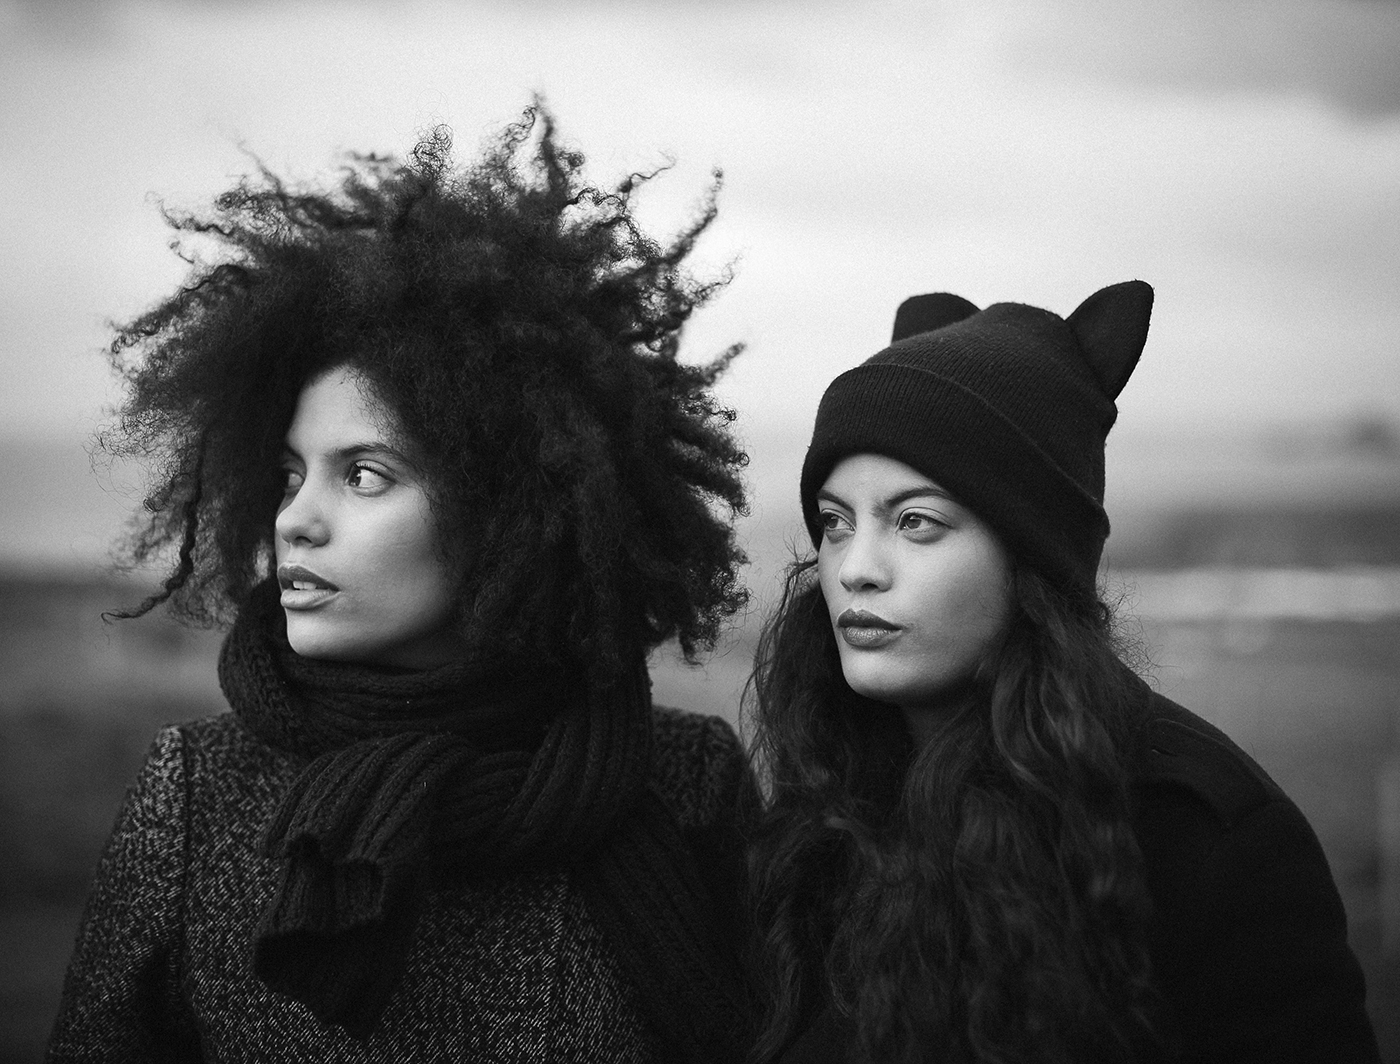 """""""Me Voy"""" Ibeyi feat. Mala Rodriguez"""" remixed by King Doudou, is Northern Transmissions' 'Song of the Day'"""